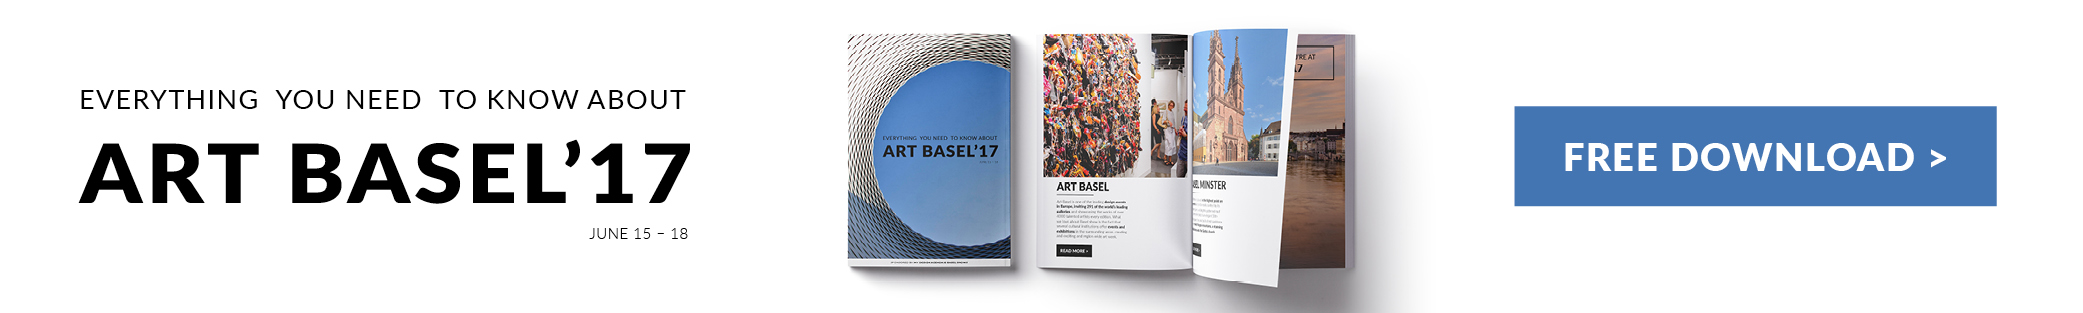 art basel 2017 Design Conferences You Can't Miss at Art Basel 2017 art basel 2017 free download